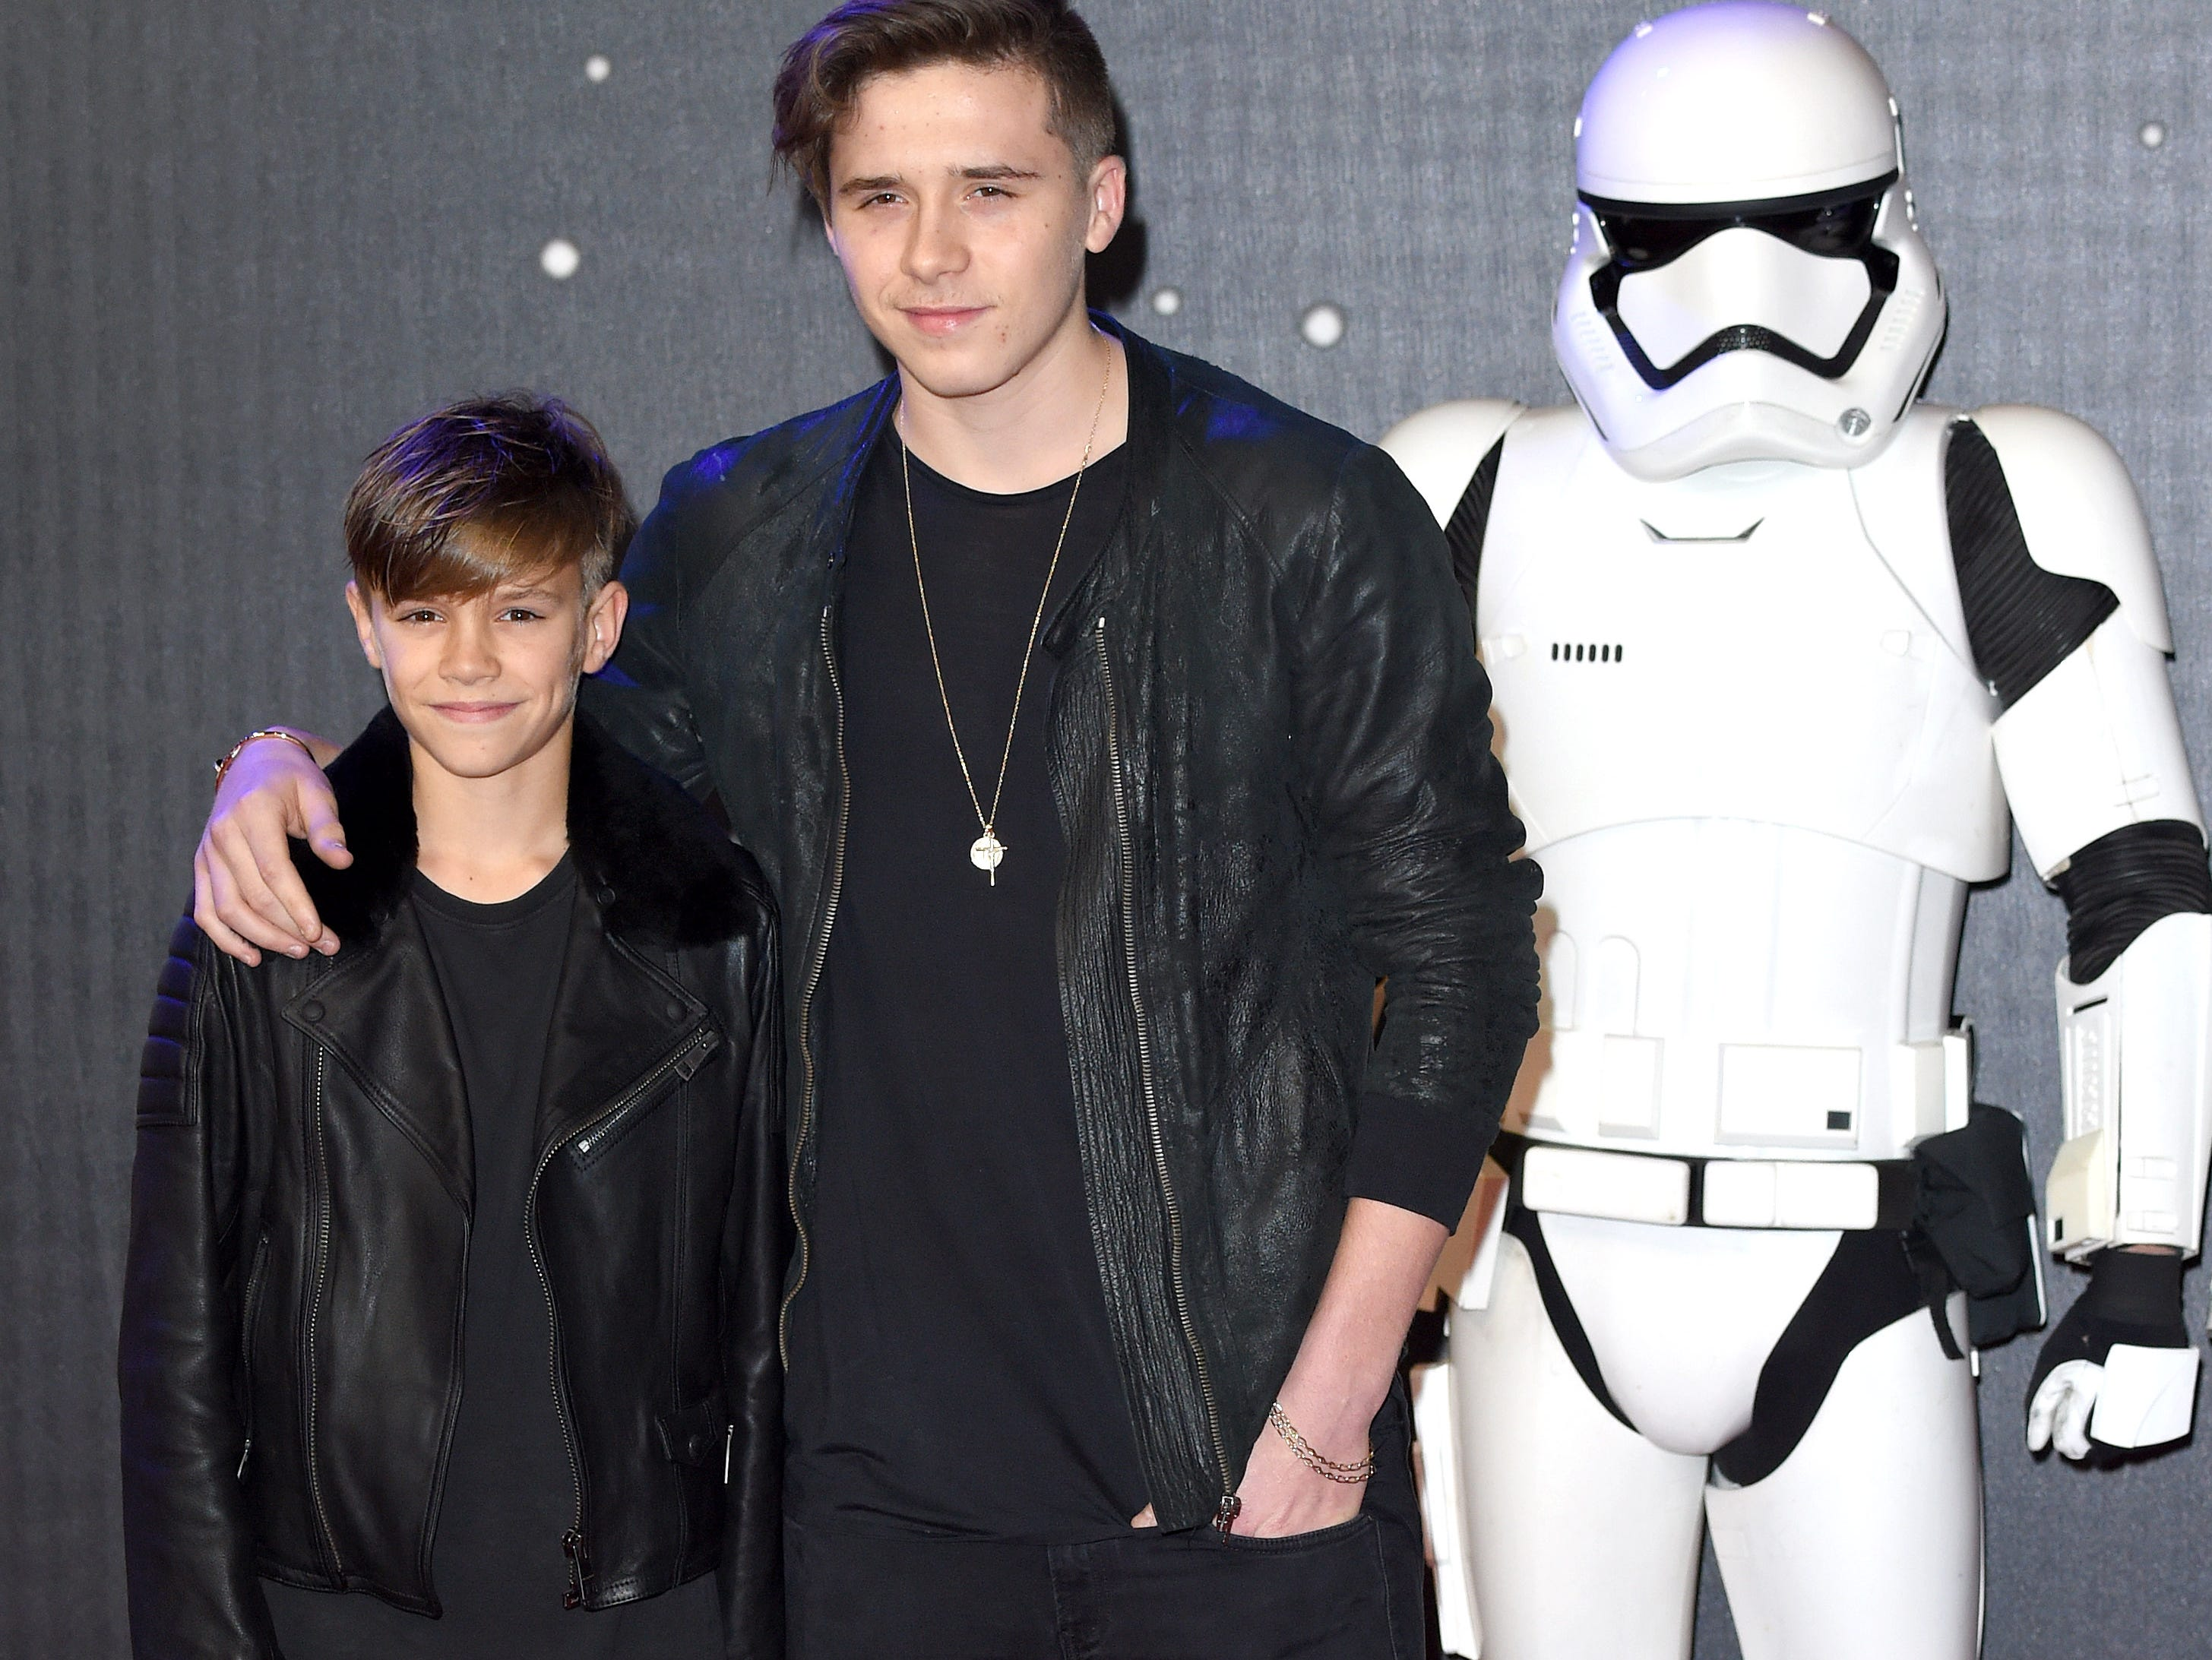 "LONDON, ENGLAND - DECEMBER 16:  Romeo Beckham and Brooklyn Beckham attend the European Premiere of ""Star Wars: The Force Awakens"" at Leicester Square on December 16, 2015 in London, England.  (Photo by Karwai Tang/WireImage) ORG XMIT: 596088975 ORIG FILE ID: 501981140"